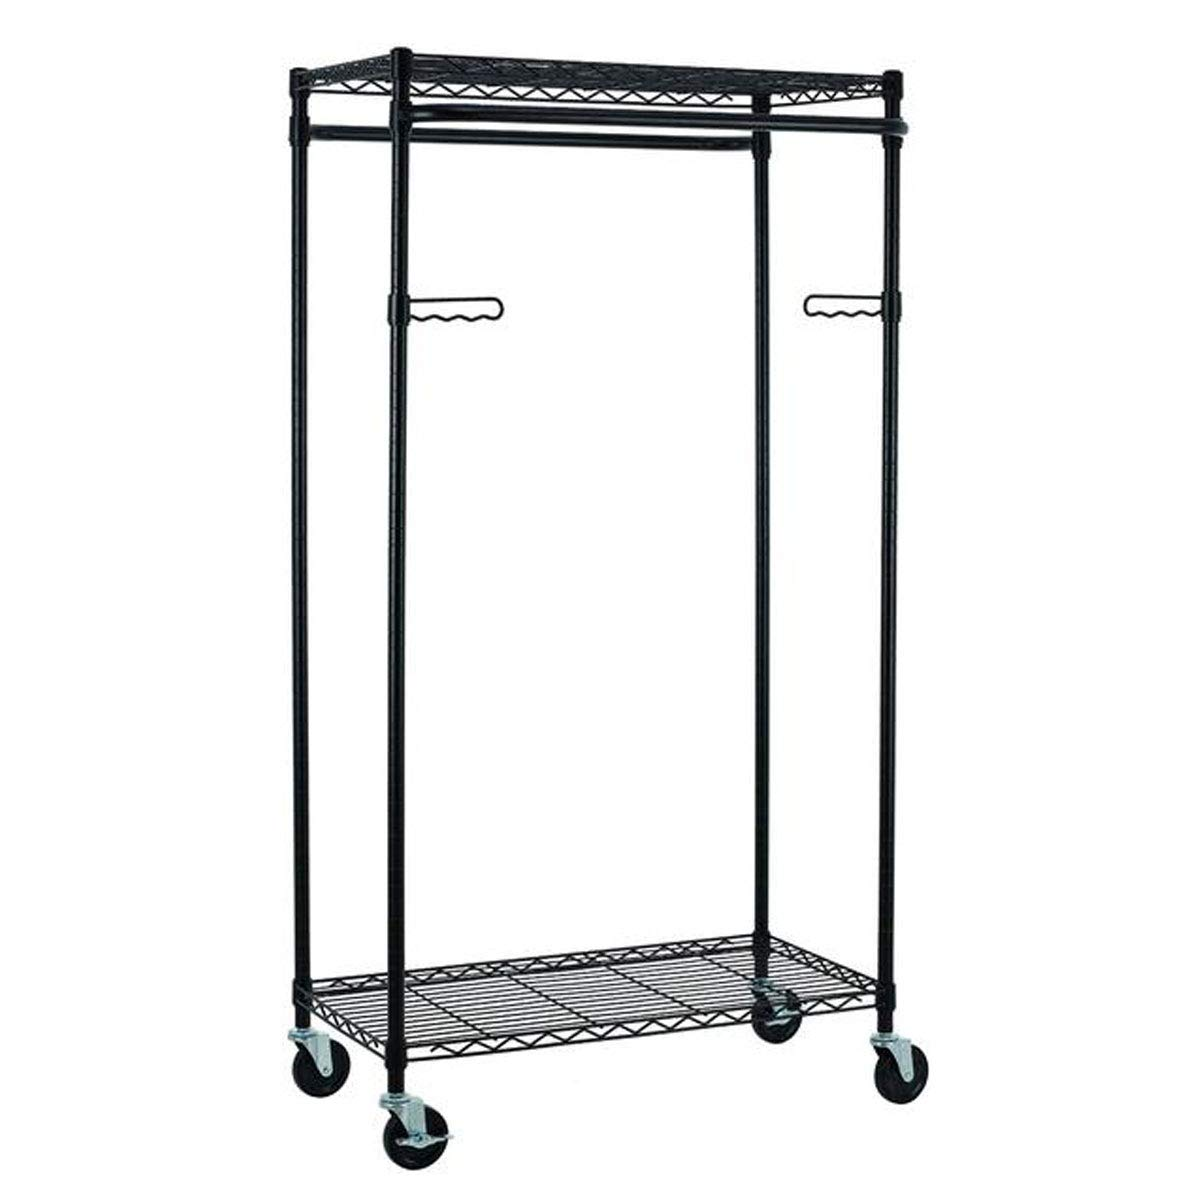 Tidyliving Heavy Duty Clothing Garment Rack Commercial Grade, Double Rod Rolling Clothes Organizer Adjustable Hanging Clothes Stand